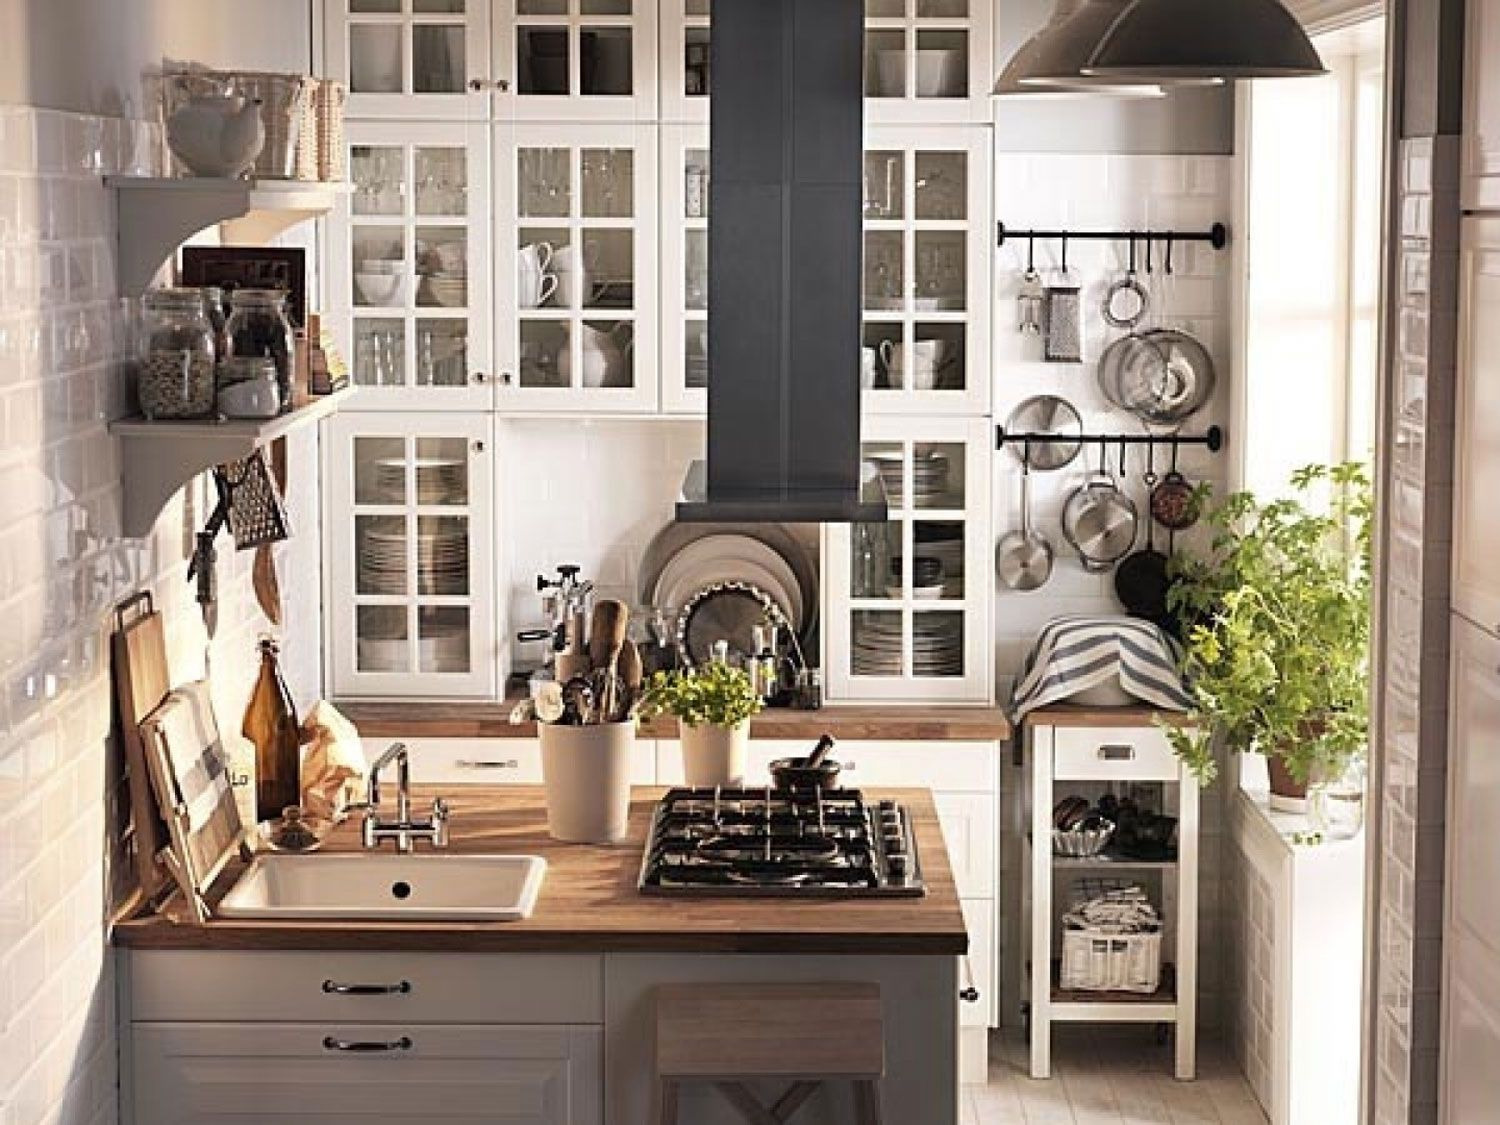 Design Beautiful Small Kitchens licious beautiful small kitchens charming kitchen design with metal sink ideas plus beautiful